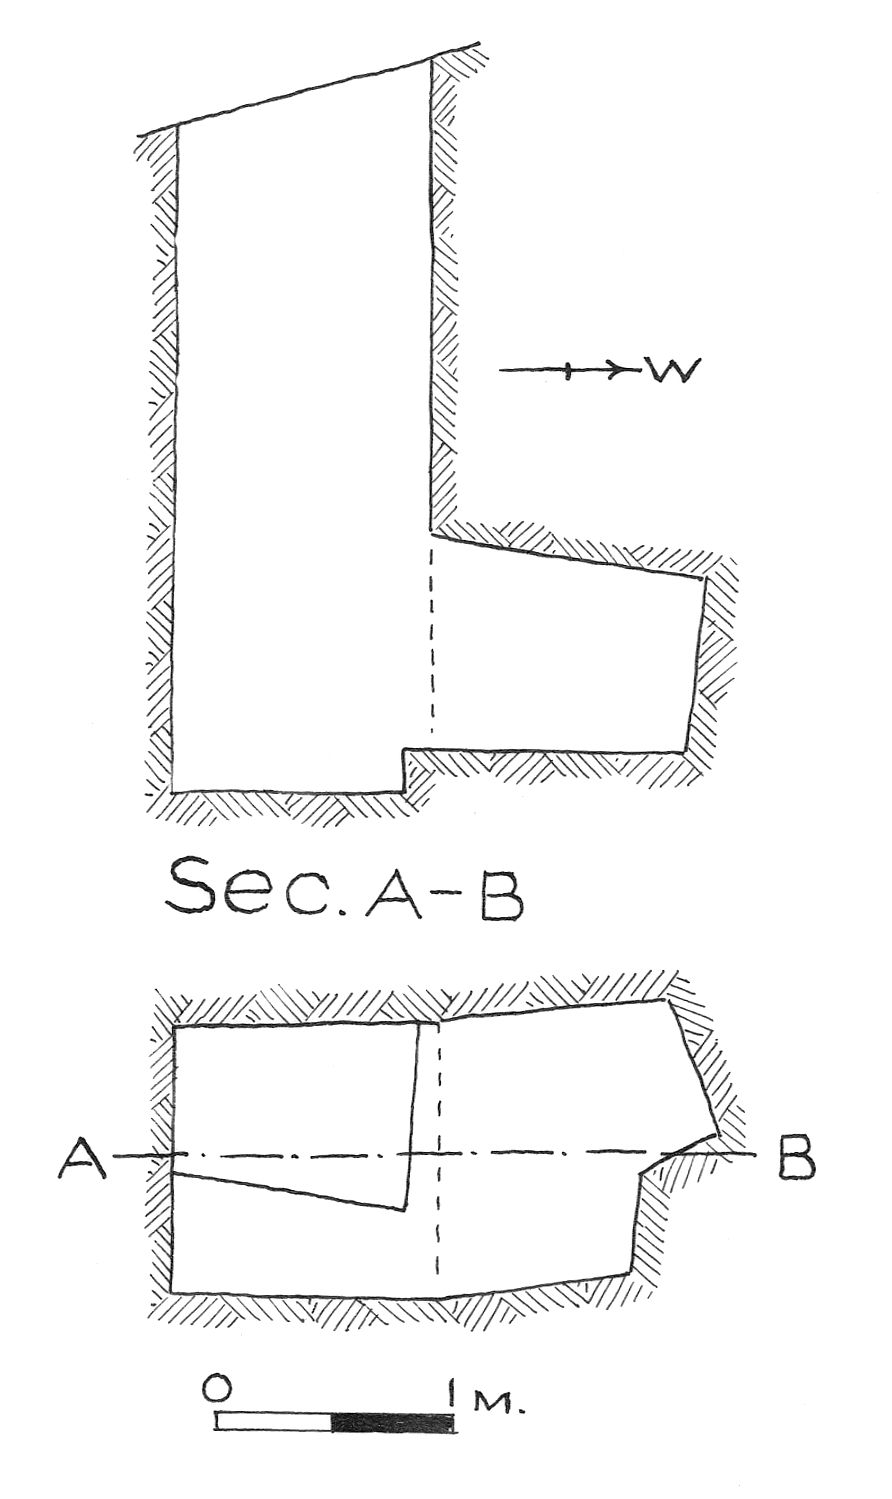 Maps and plans: G 7848, Shaft C